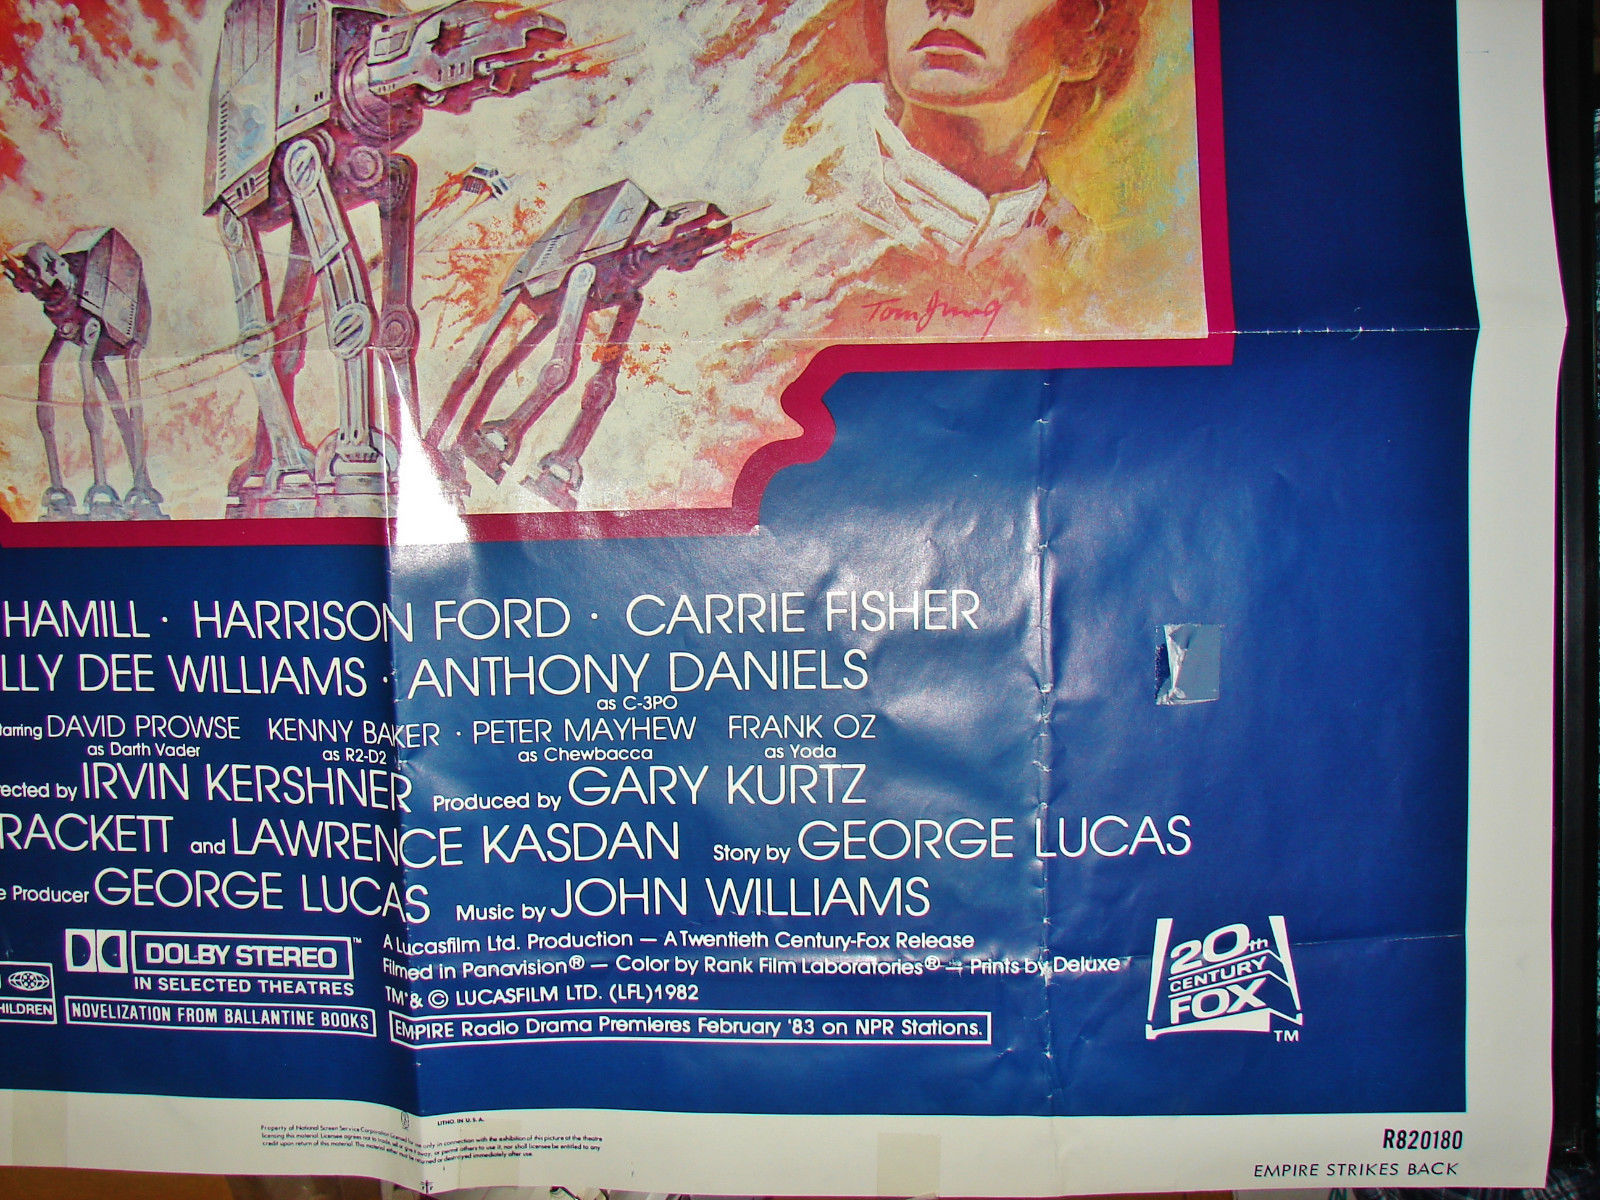 Original STAR WARS MOVIE POSTER THE EMPIRE STRIKES BACK R820180 27x41 1980 used